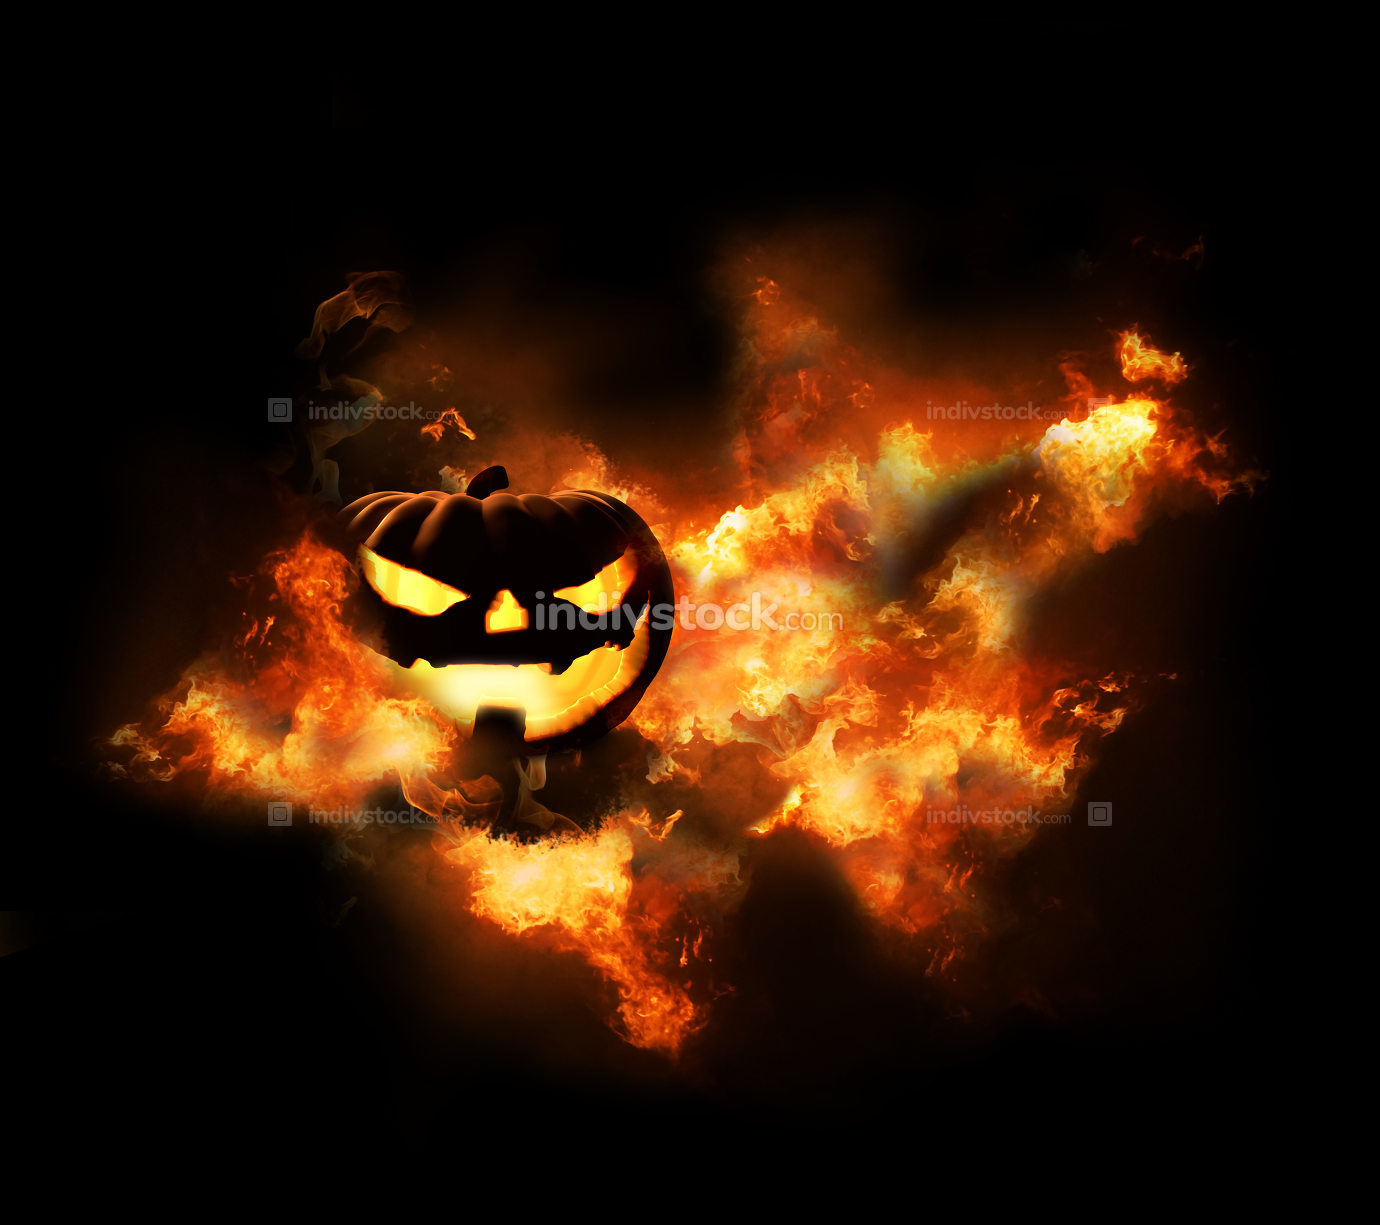 Halloween flames background 3d rendering